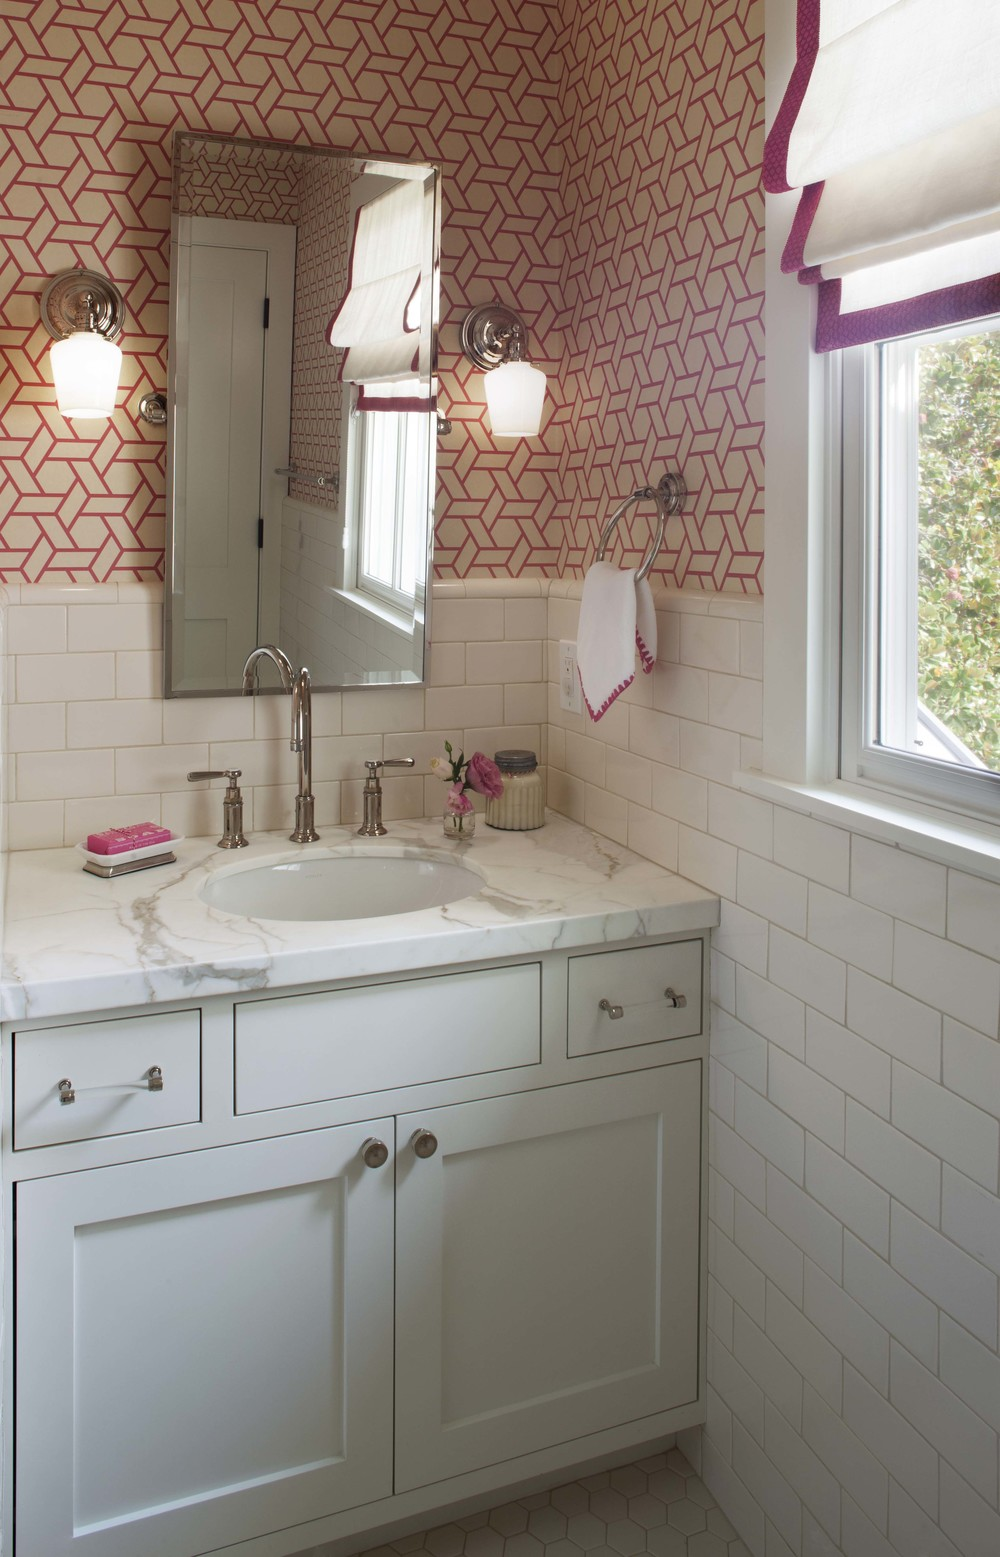 Modern Farmhouse: Girl's Bath